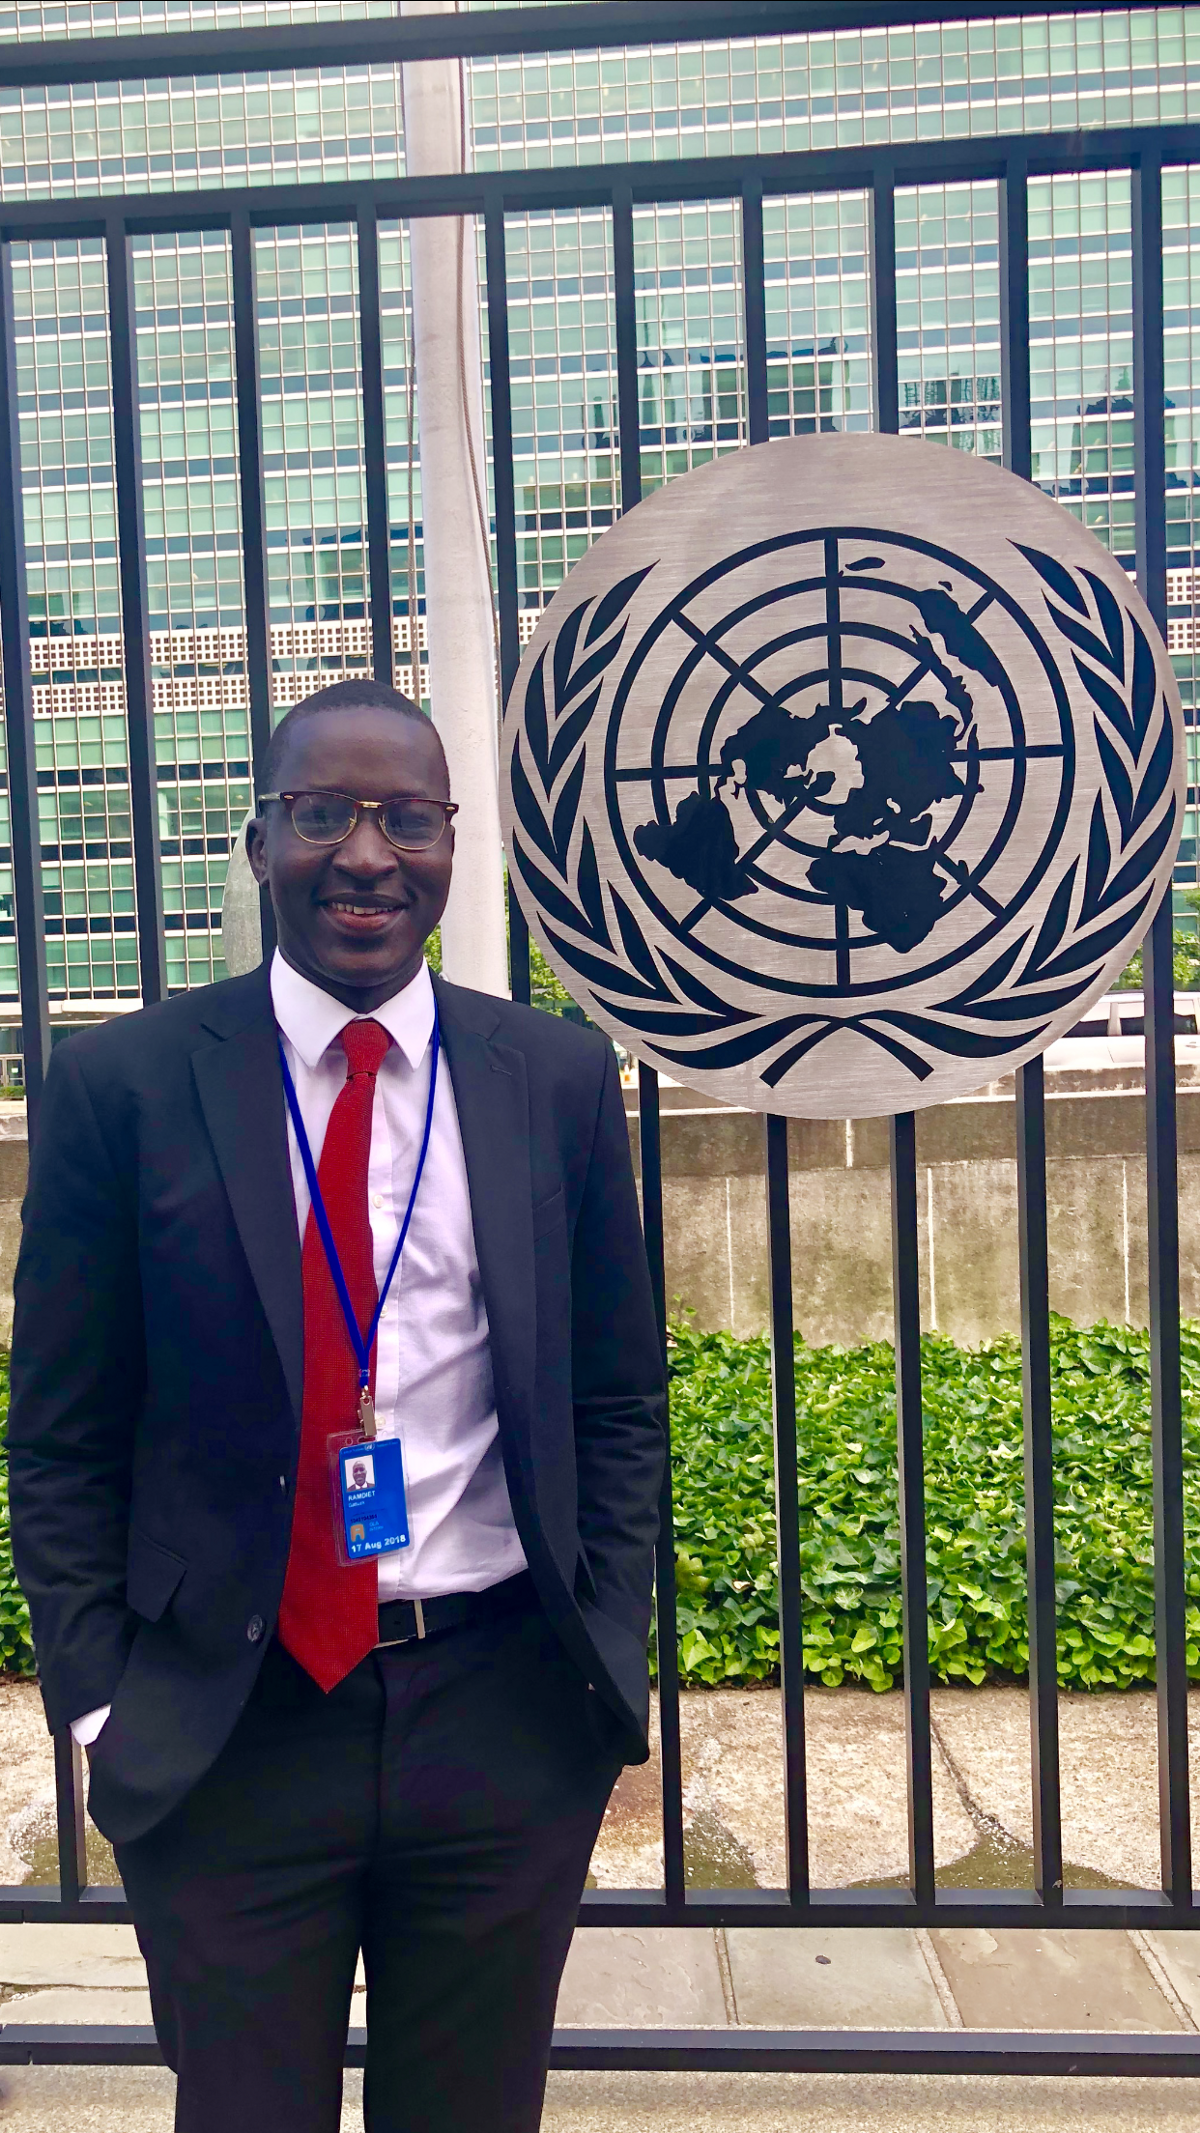 One Man's Journey From a Refugee Camp in Ethiopia to UN Headquarters in NYC